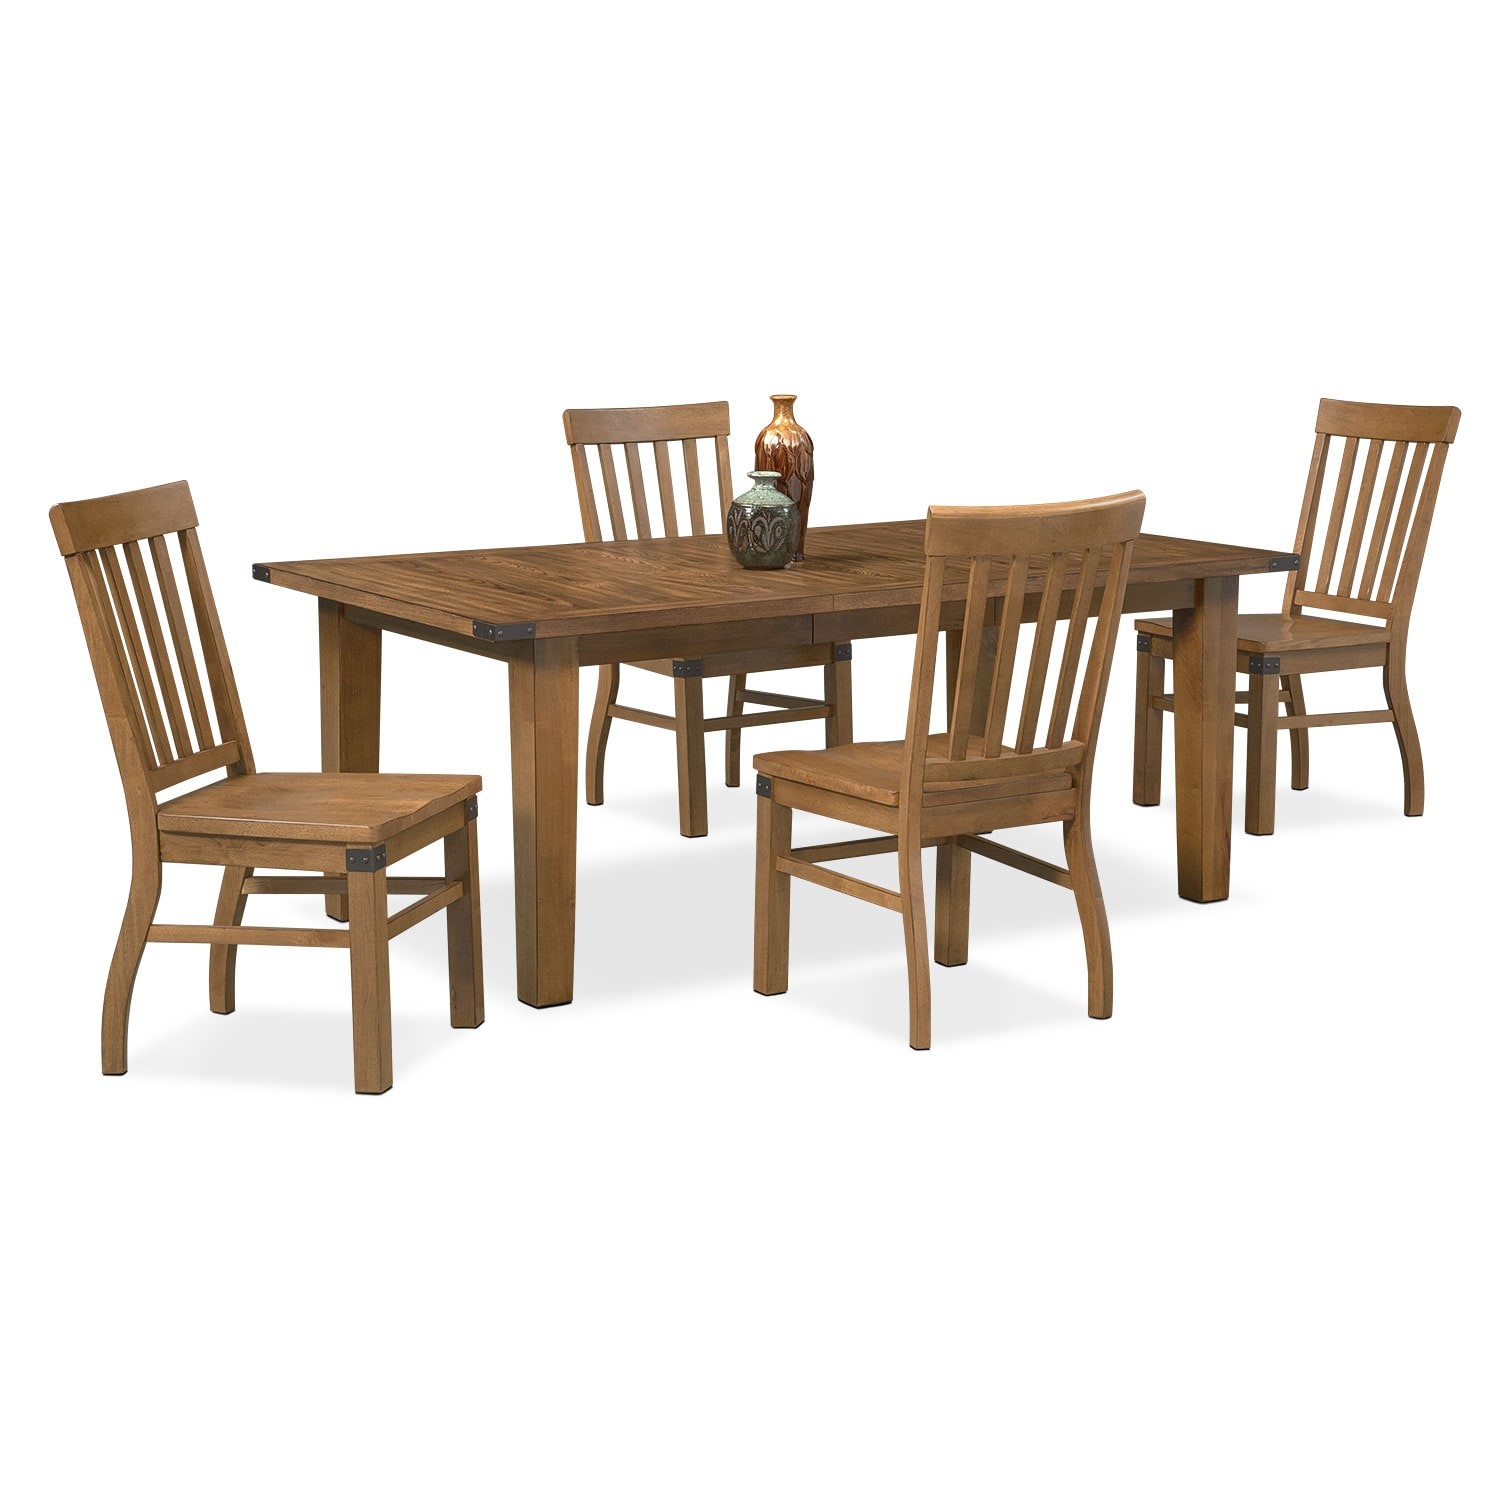 Dining Room Furniture - Salem 5-Piece Dinette Set - Pecan